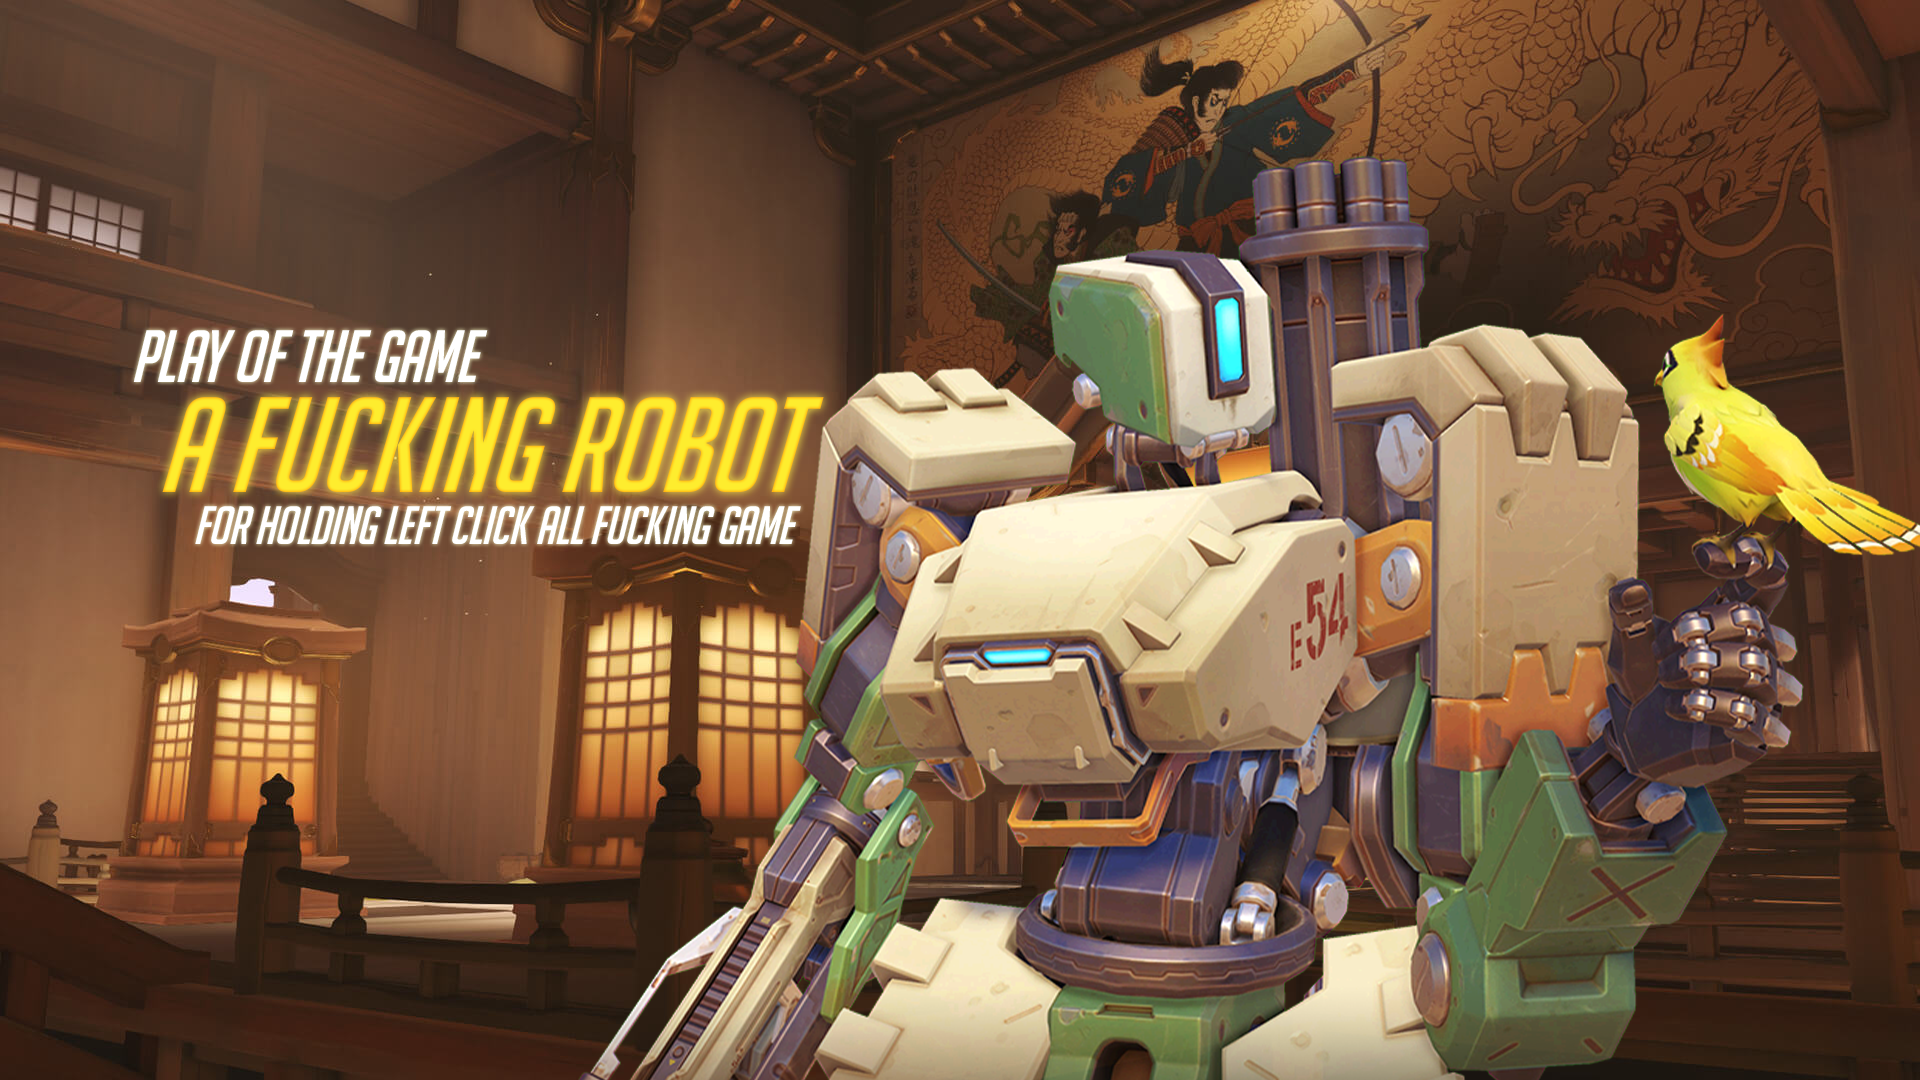 Overwatch Blizzard Entertainment Bastion Play of the Game